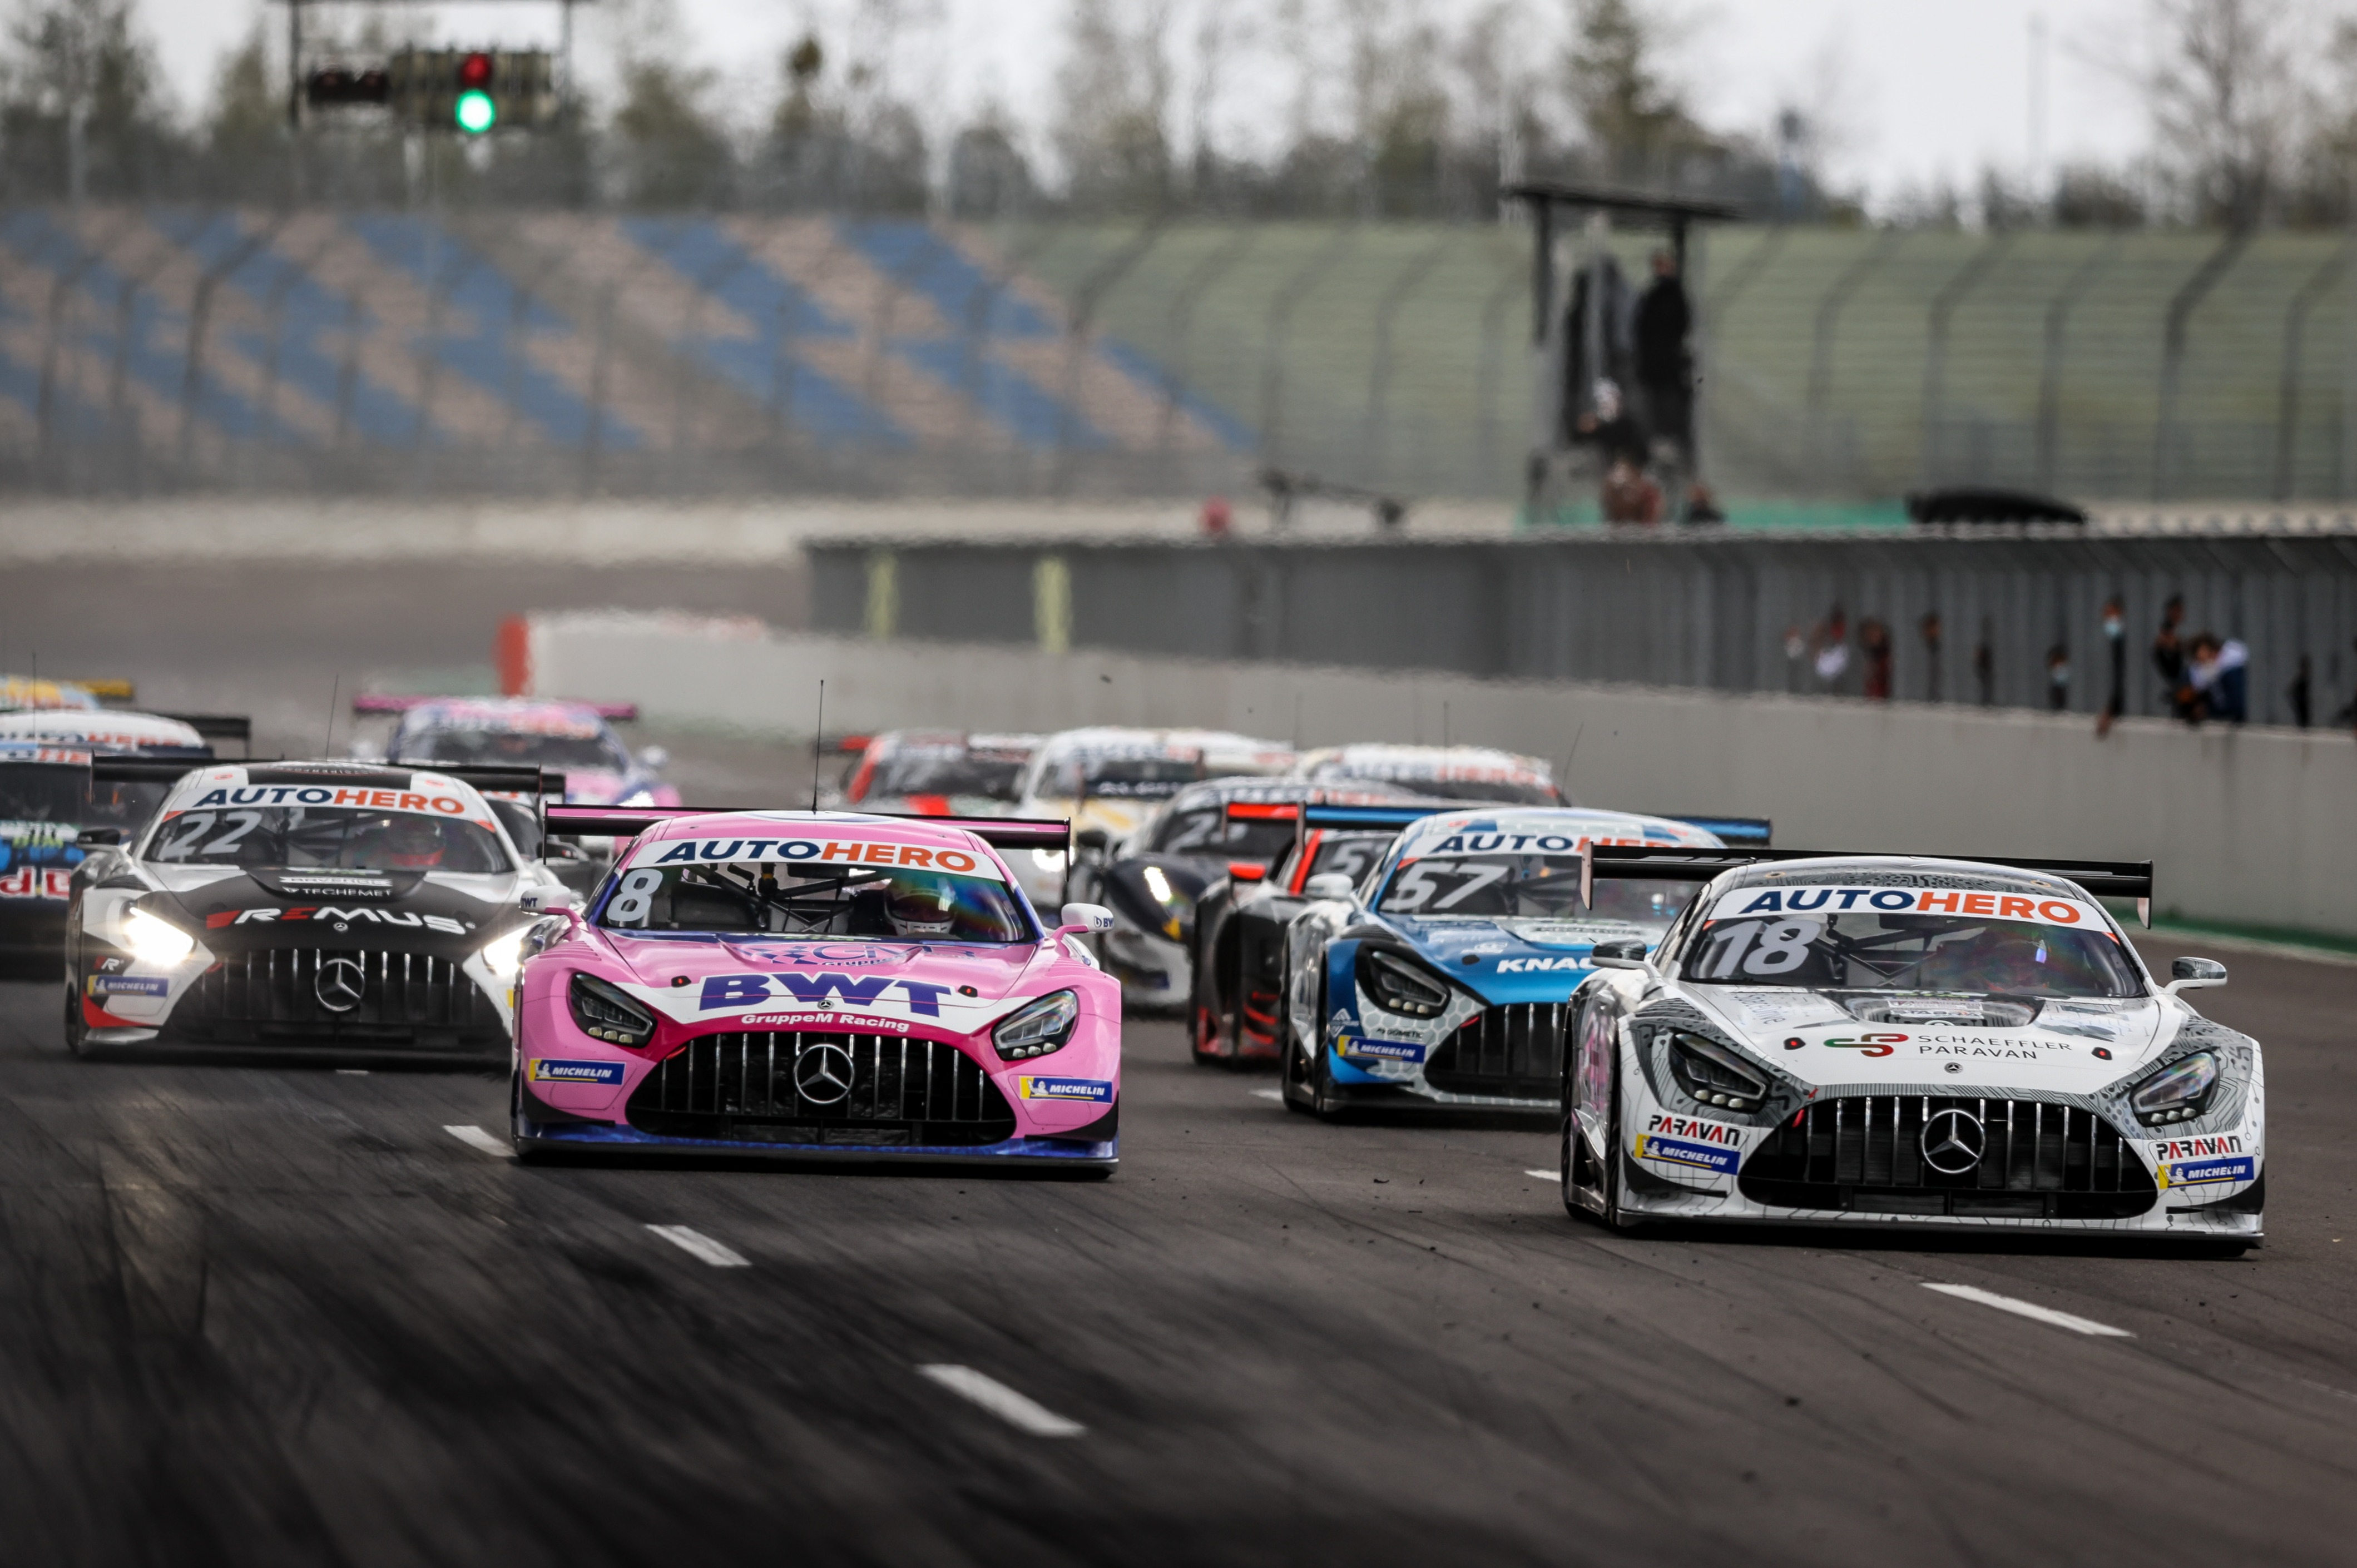 Mercedes returns to the DTM after an absence of two seasons